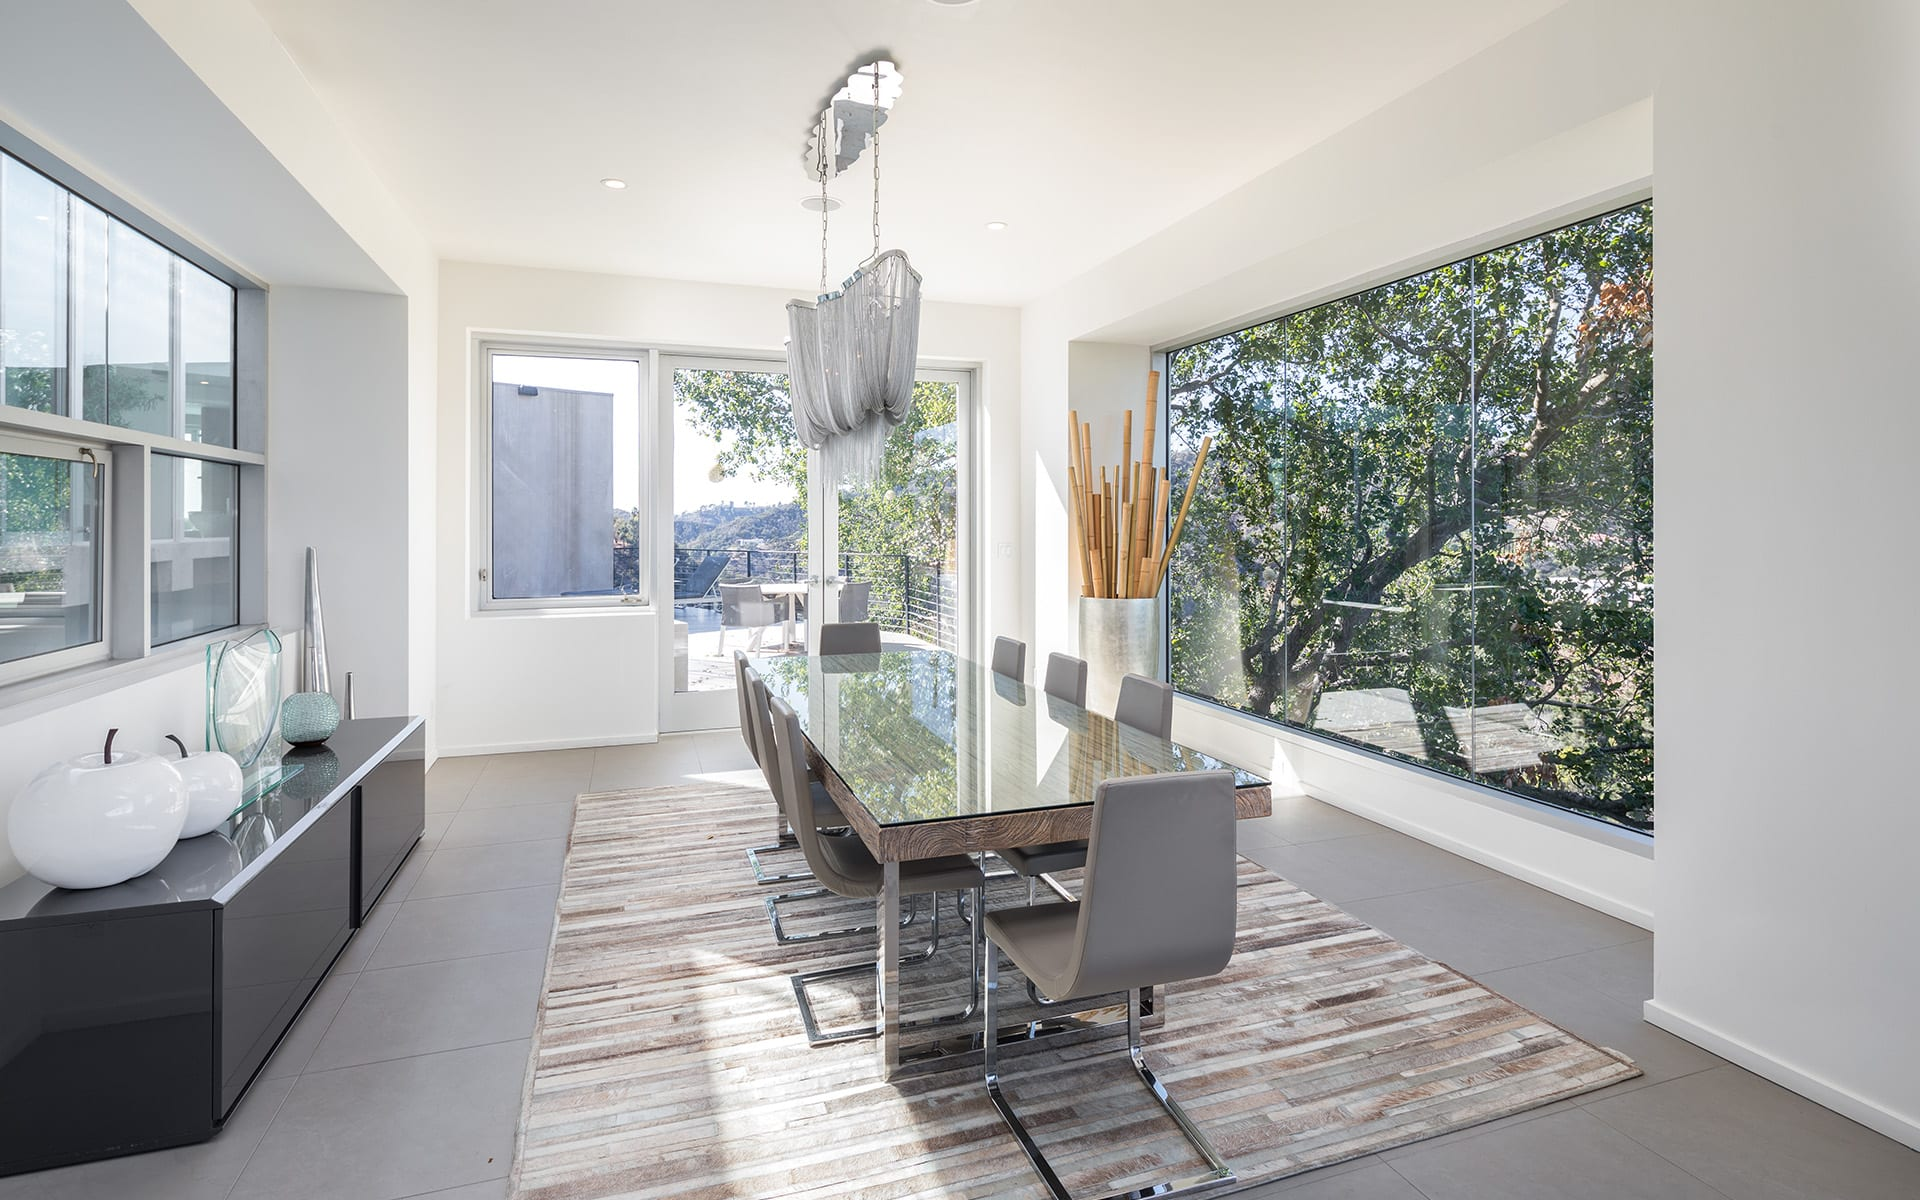 Additional photo for property listing at 9716 Oak Pass Rd 9716 Oak Pass Rd Beverly Hills, California,90210 Hoa Kỳ